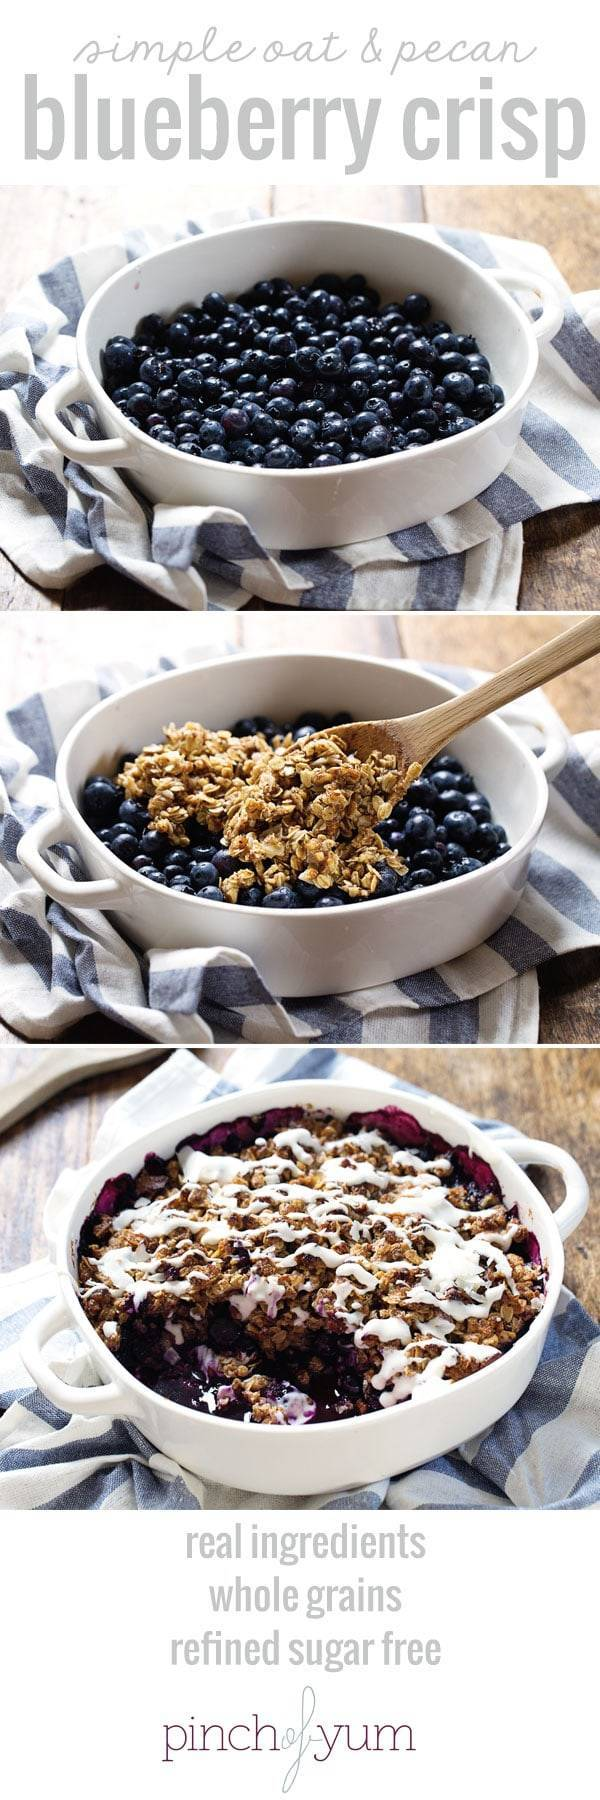 Simple Oat and Blueberry Crisp making process.